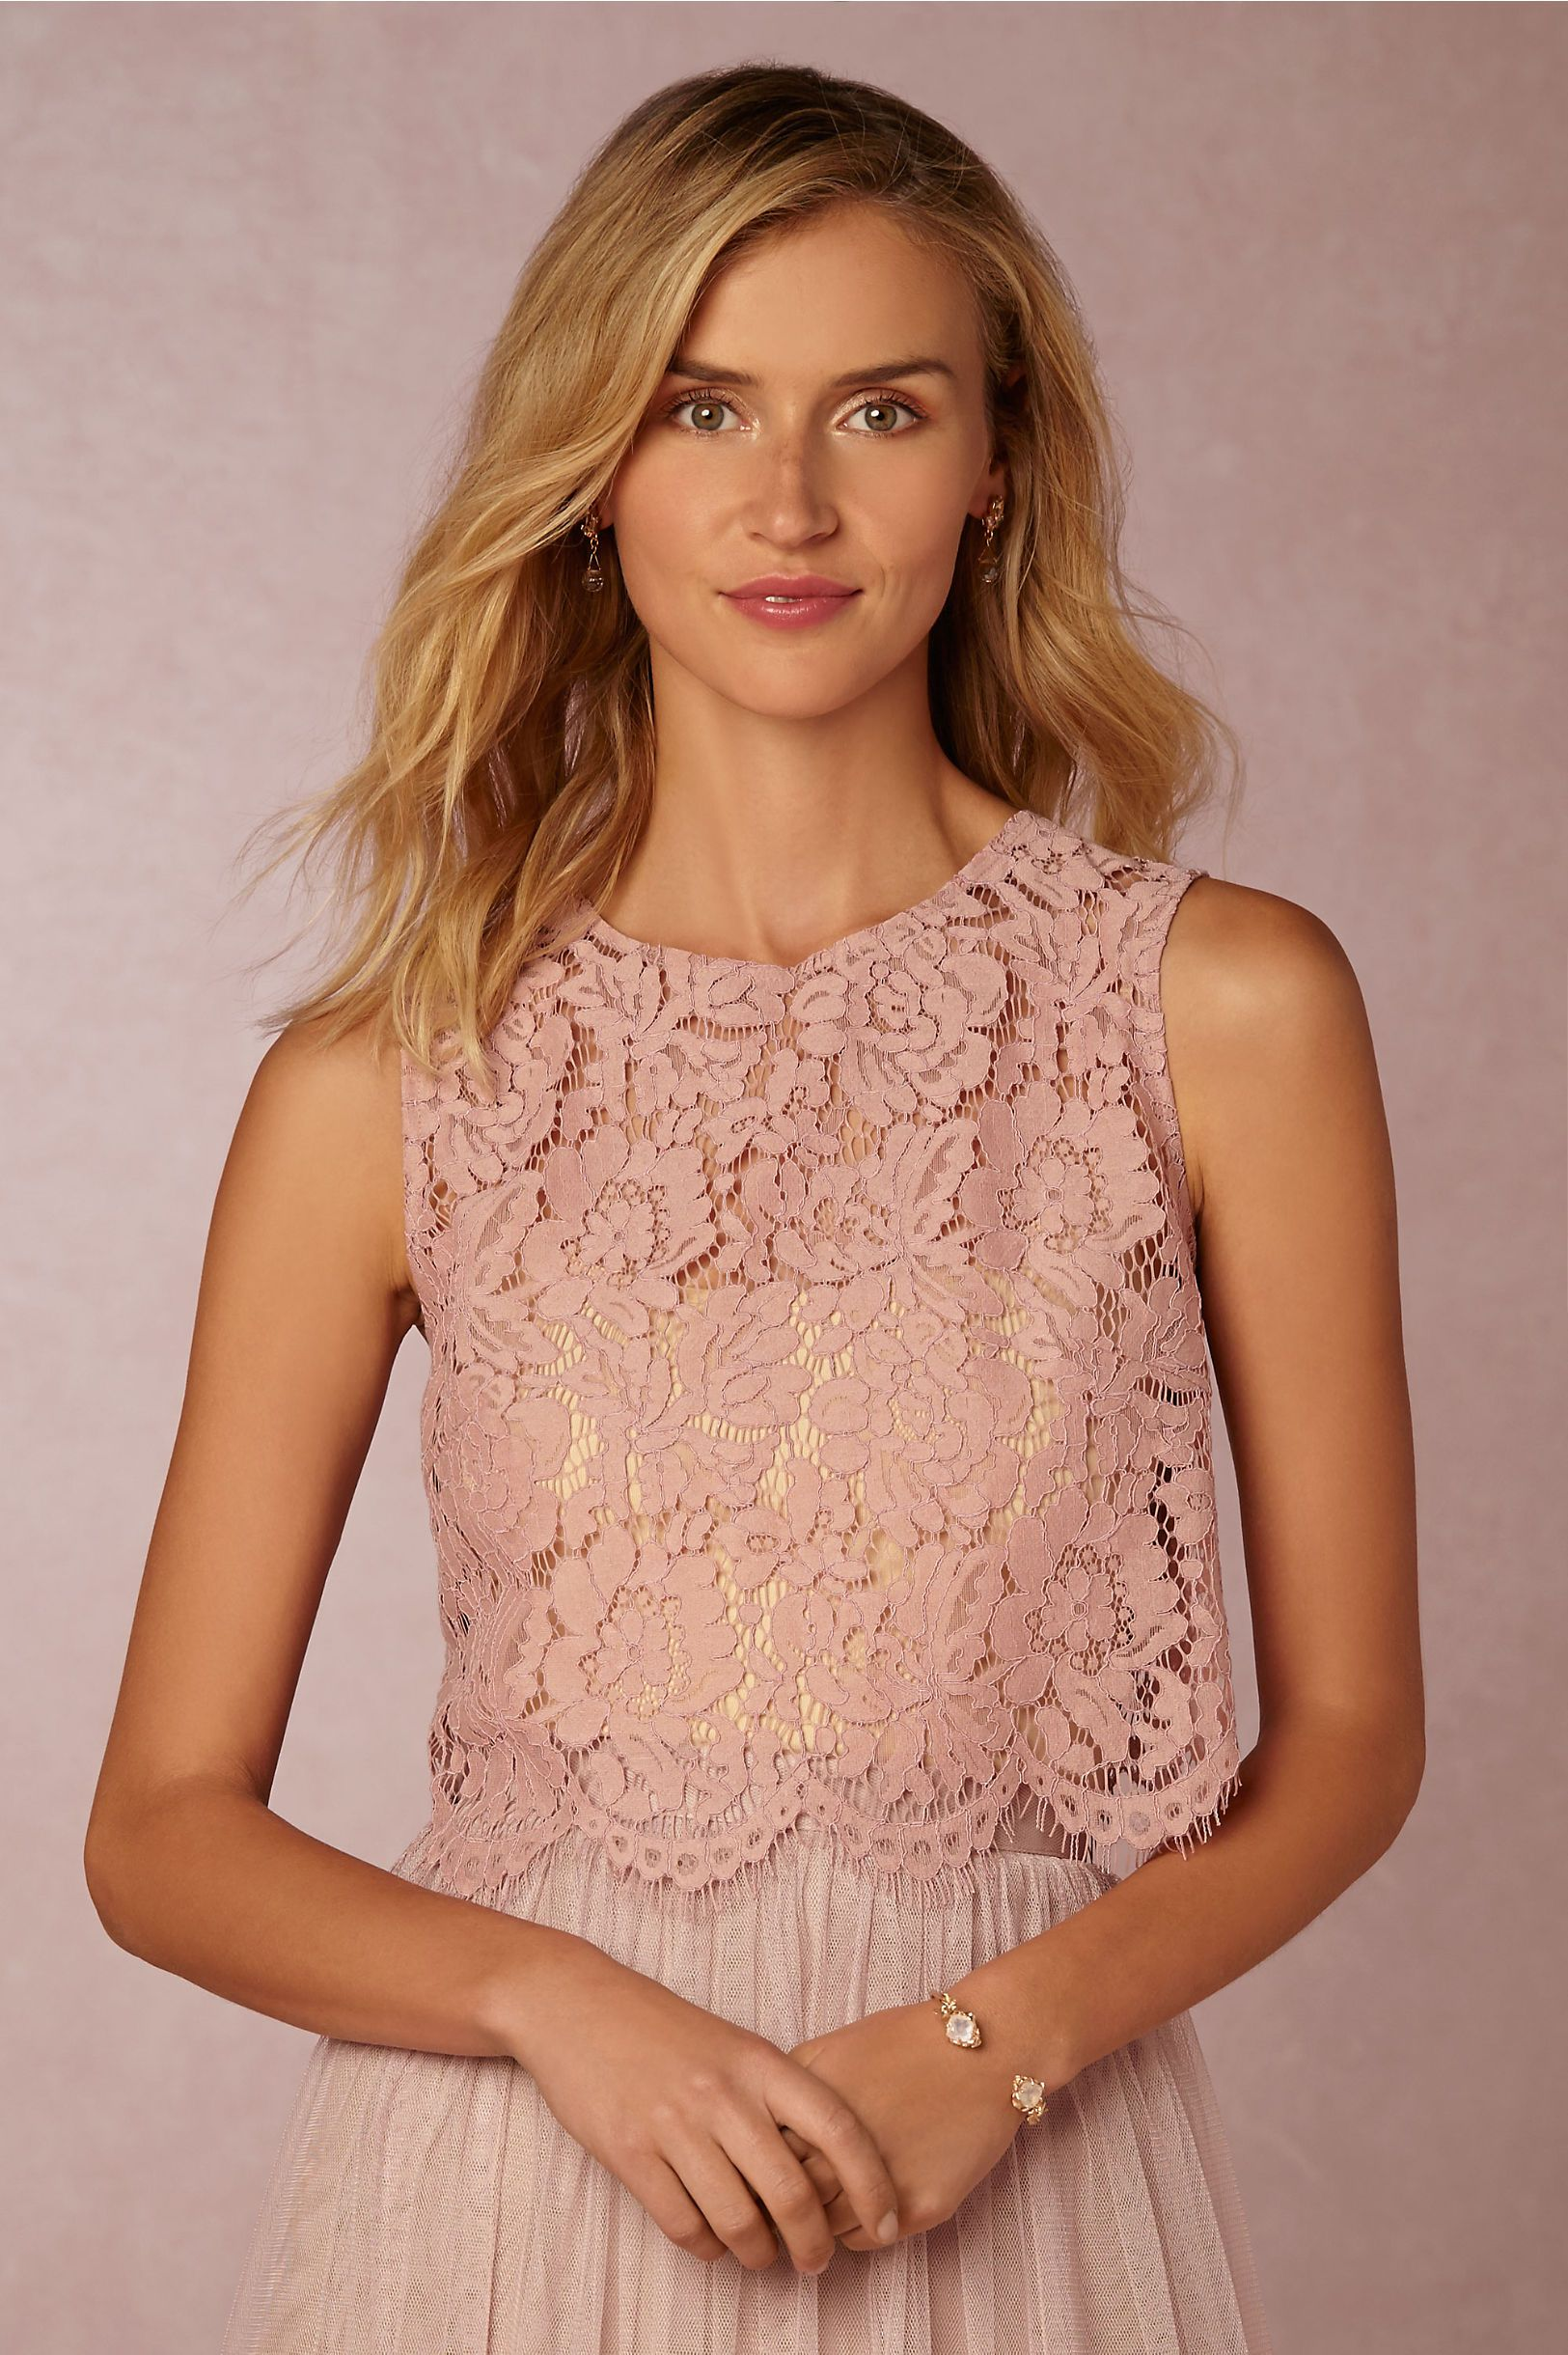 pink lace crop top Cleo Top in whipped apricot from